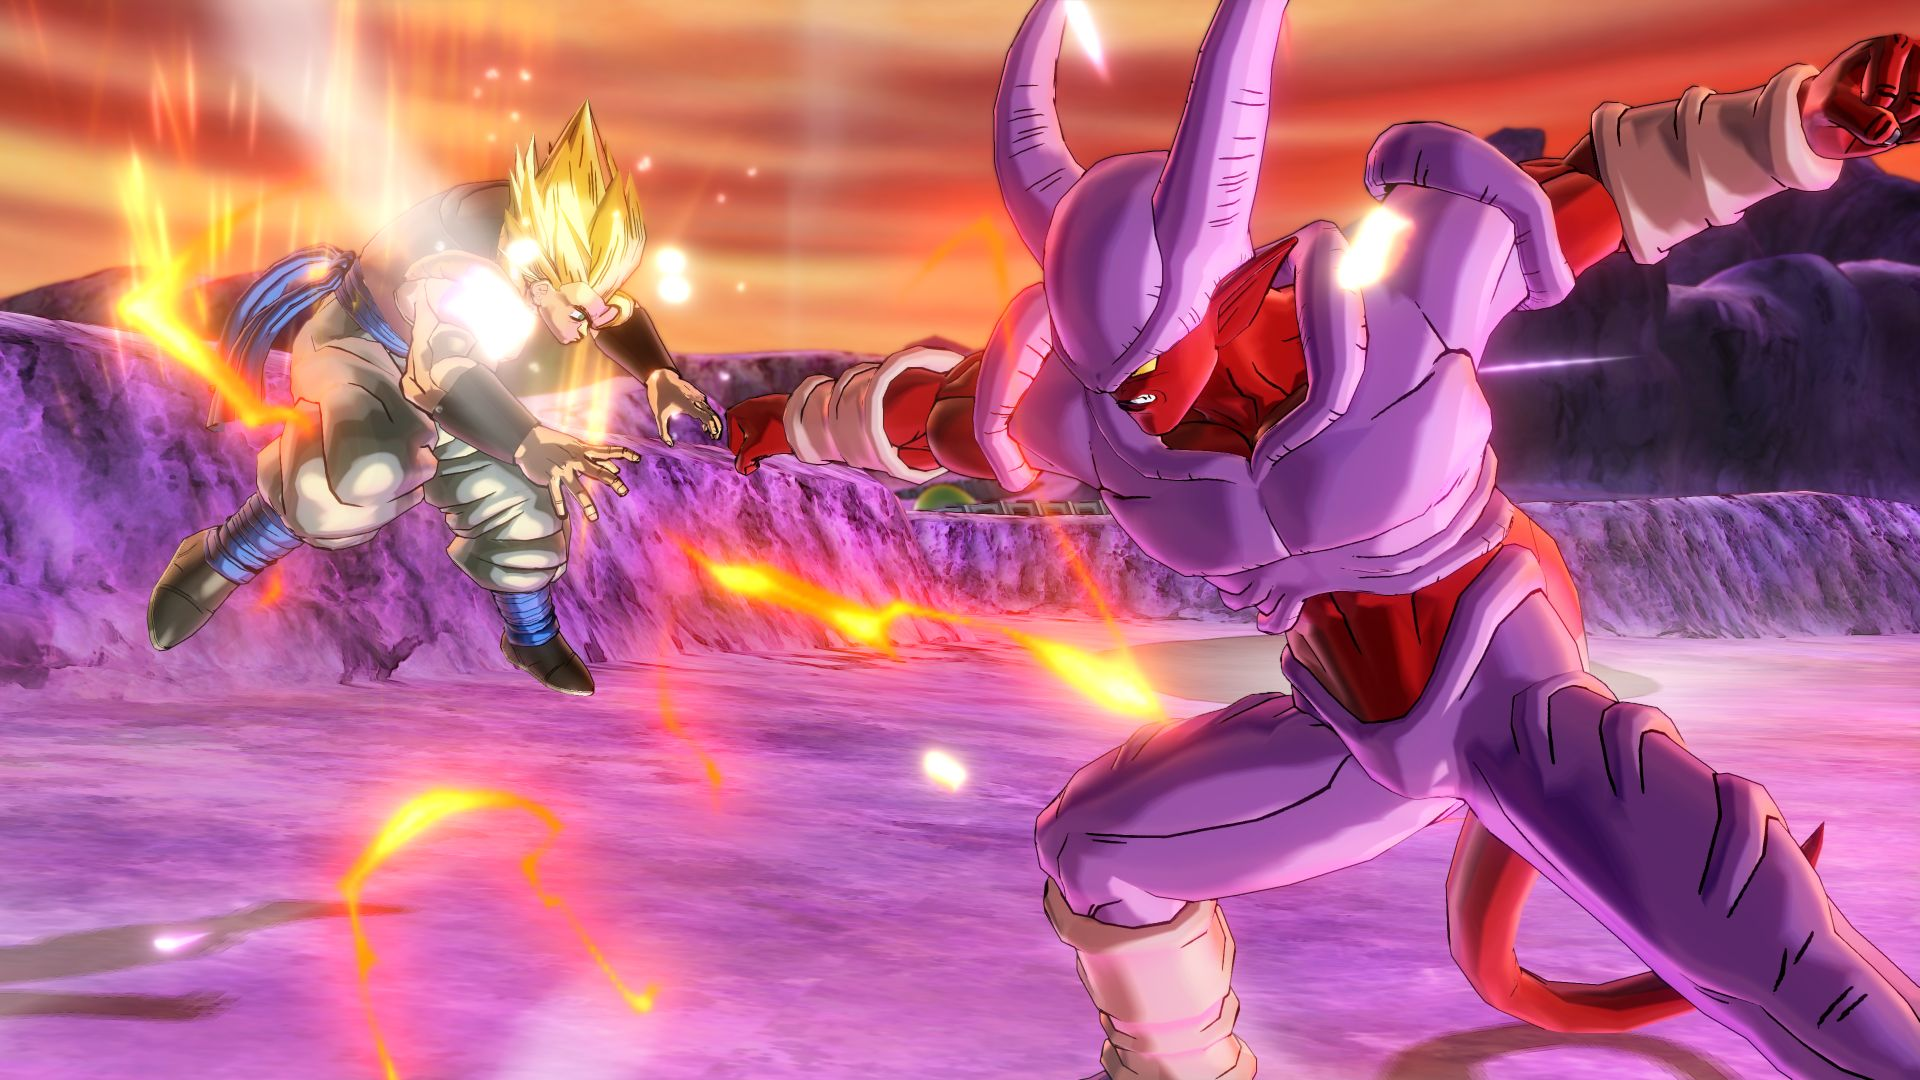 New Patch For Steam Version Of Dragon Ball Xenoverse 2 Released